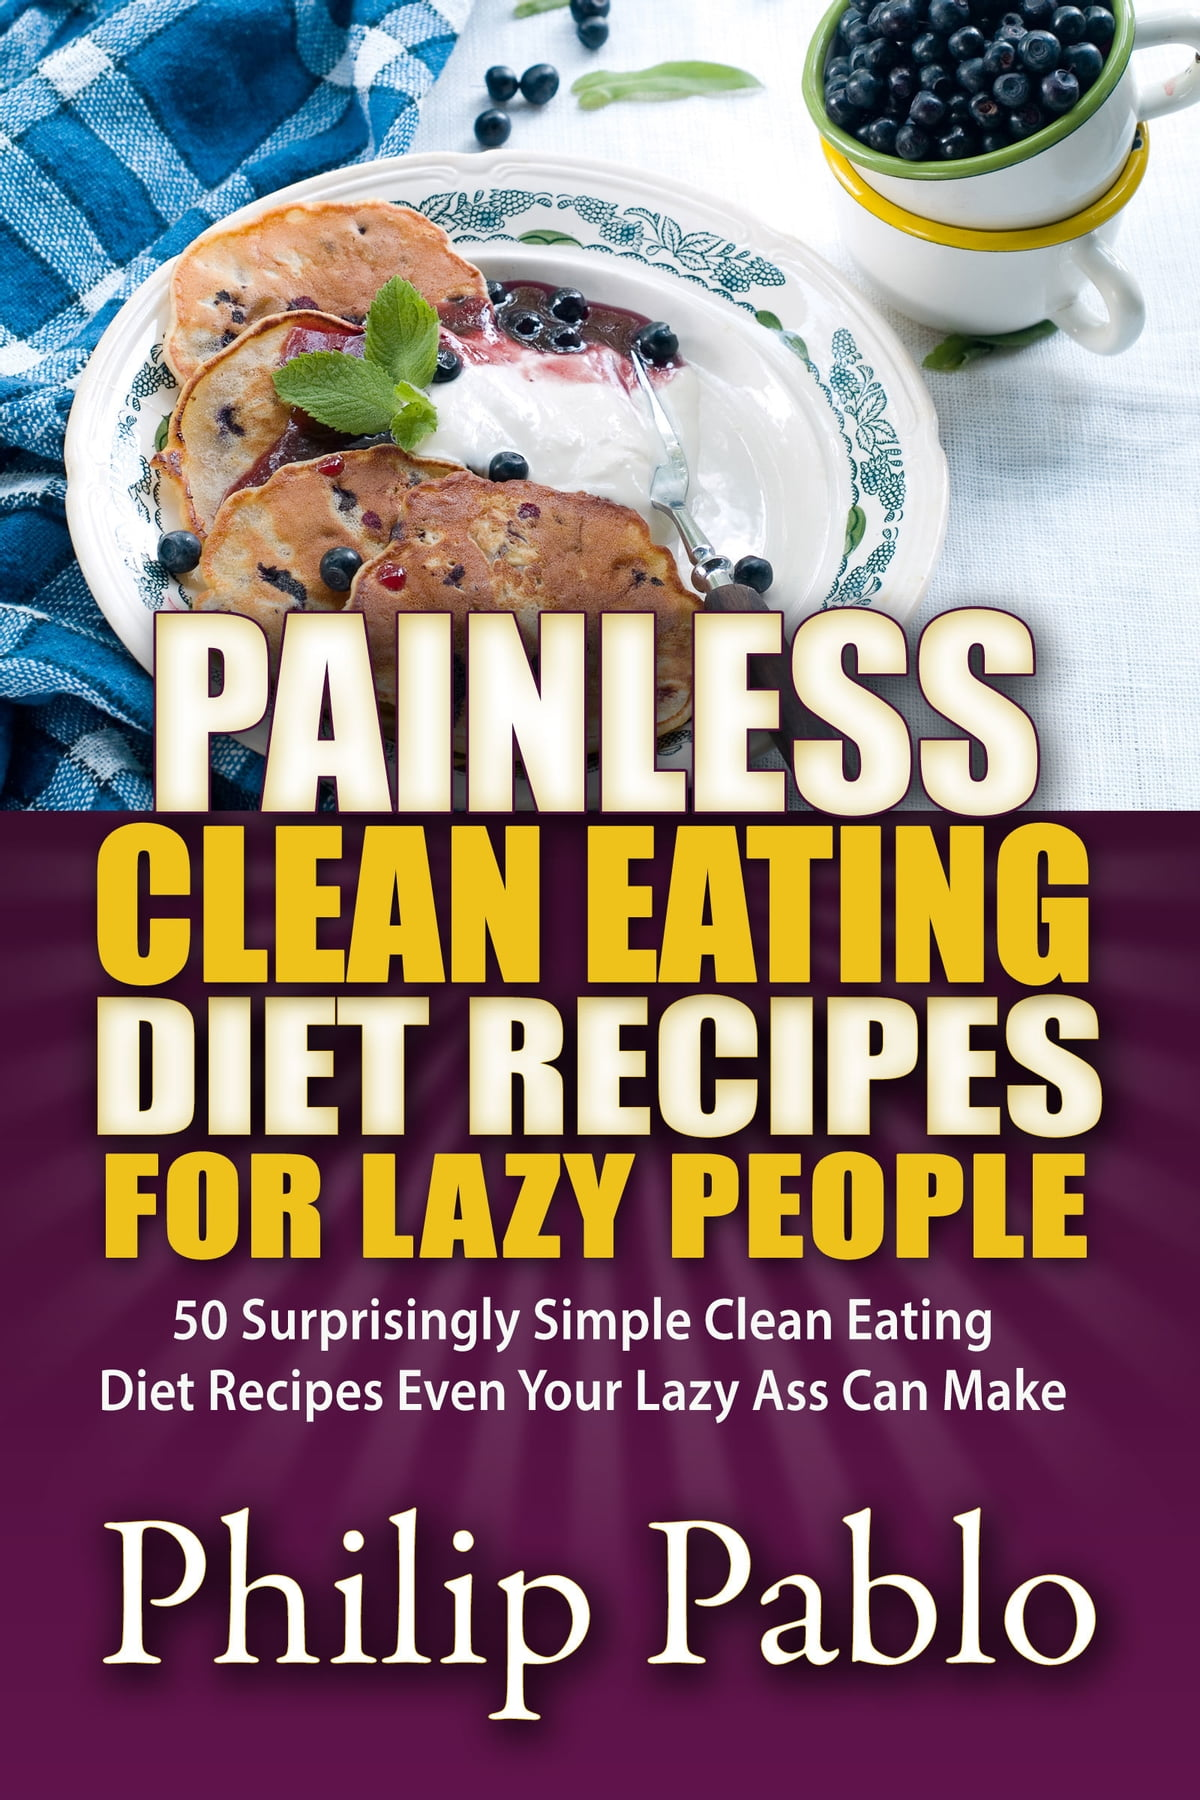 Painless Clean Eating Diet Recipes For Lazy People: 50 Simple Clean Eating  Diet Recipes Even Your Lazy Ass Can Make ebook by Phillip Pablo - Rakuten